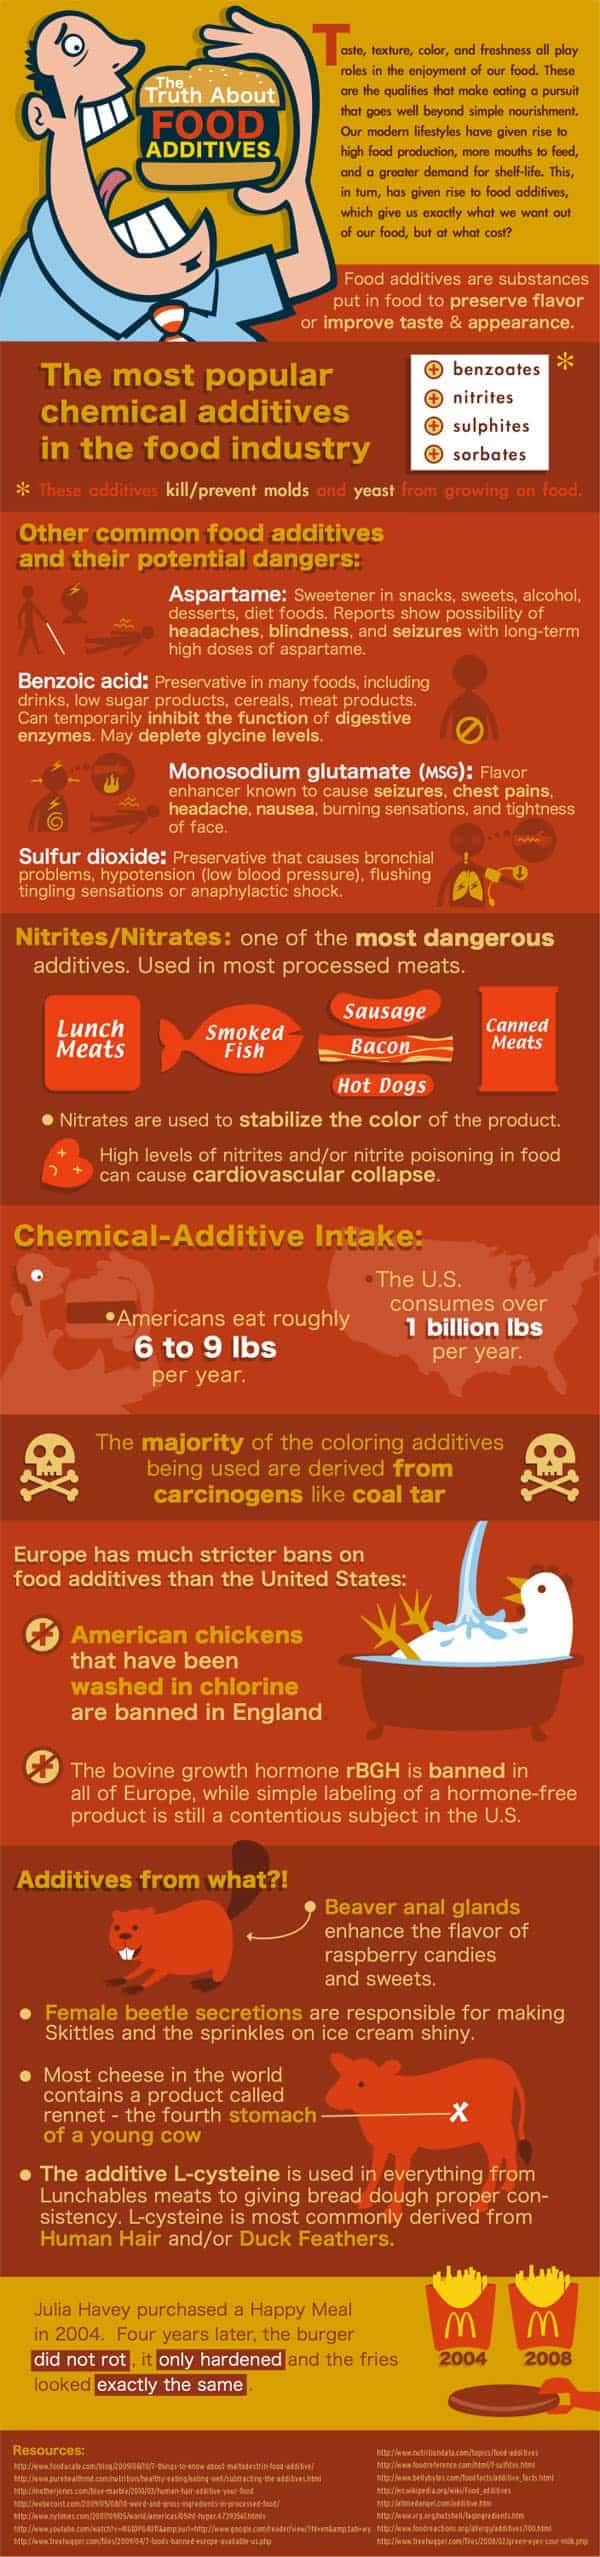 food-additives-infographic